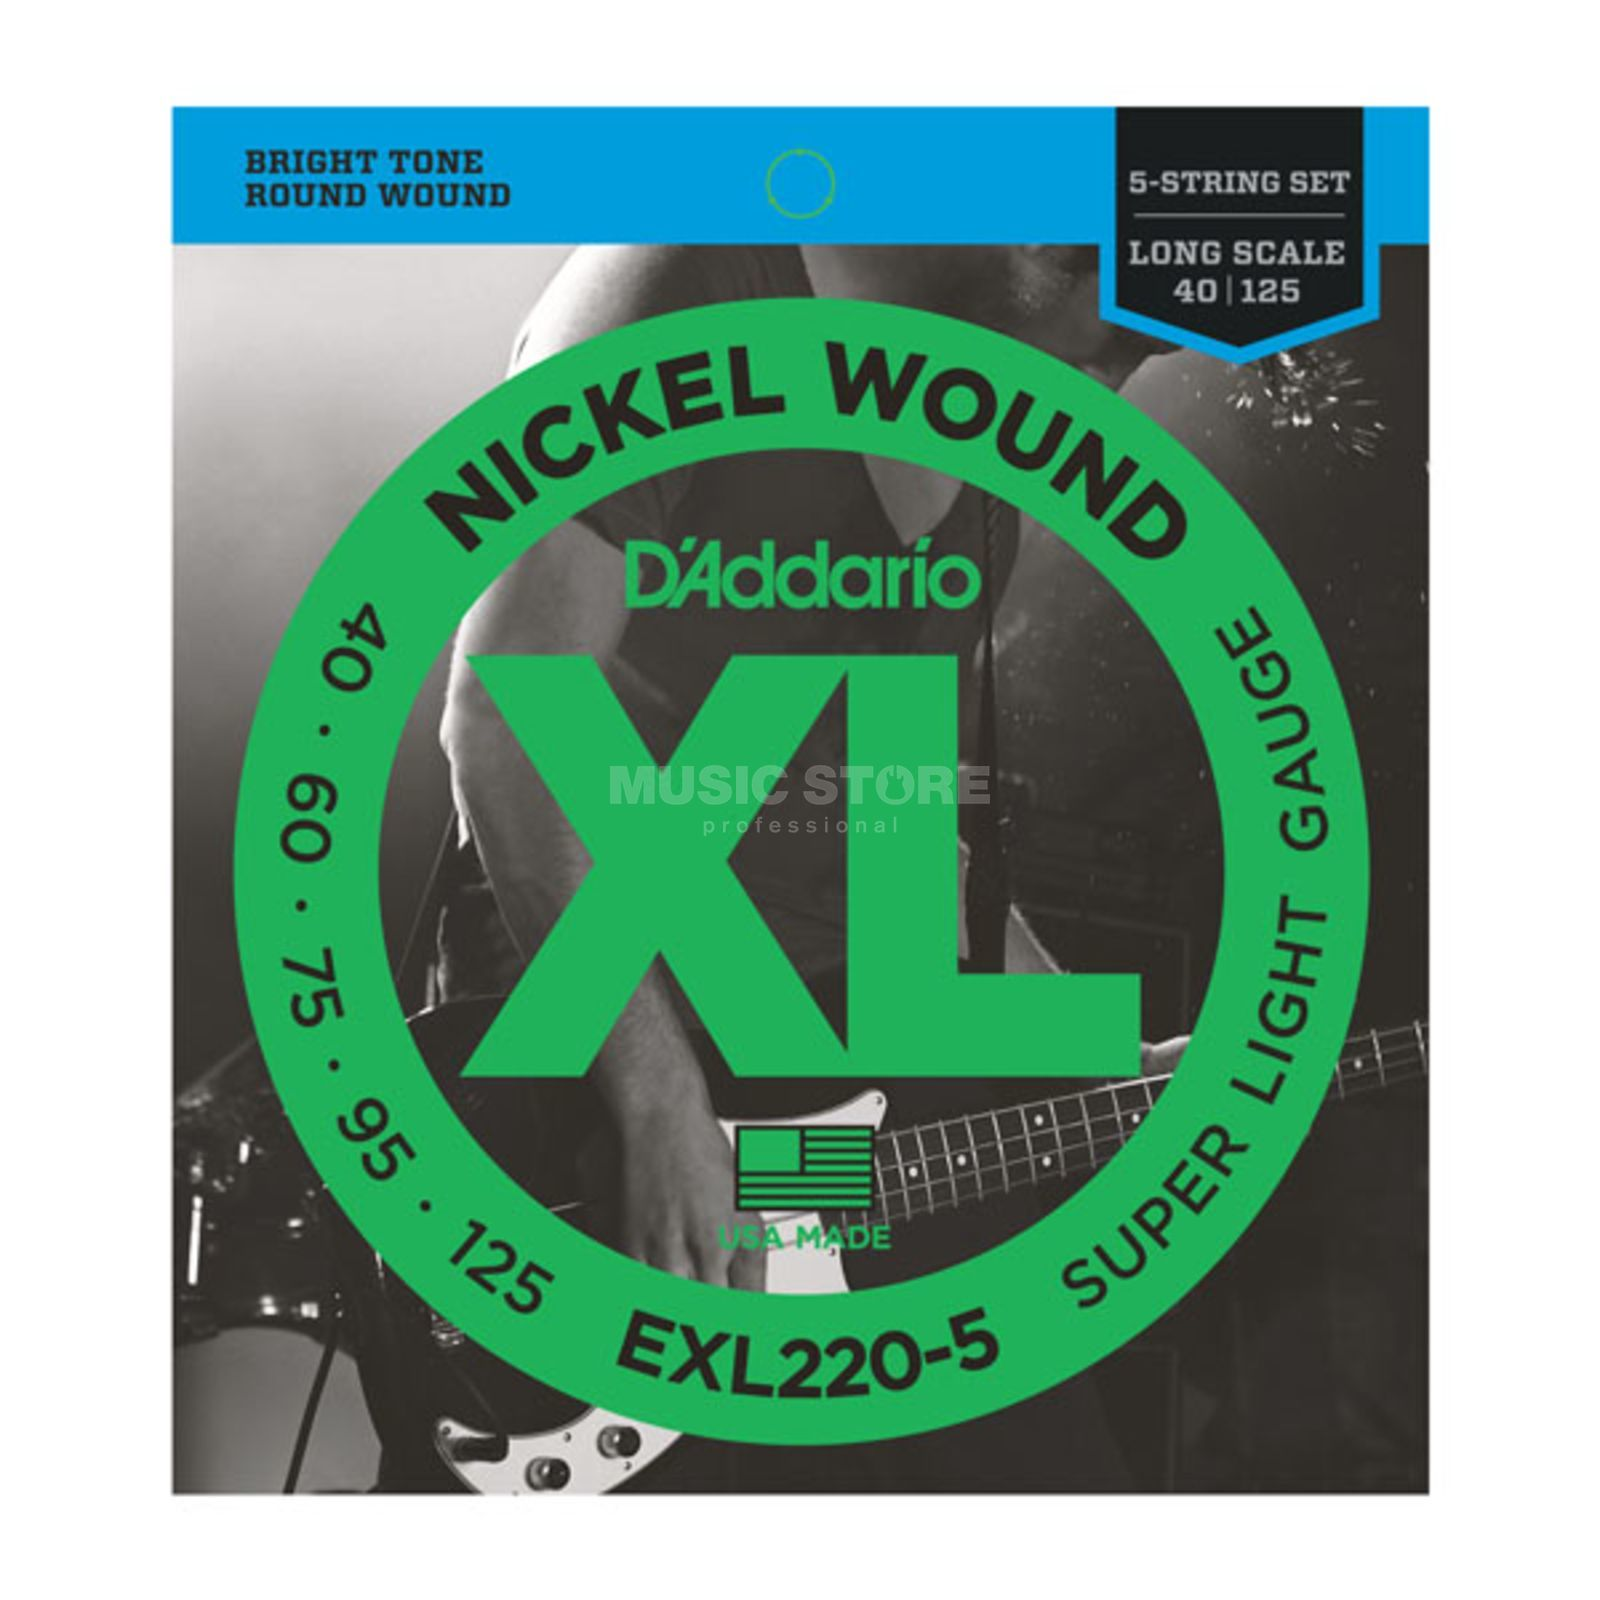 D'Addario Bass Strings XL Nickel 40-125 40-60-75-95-125, EXL220-5 Produktbillede